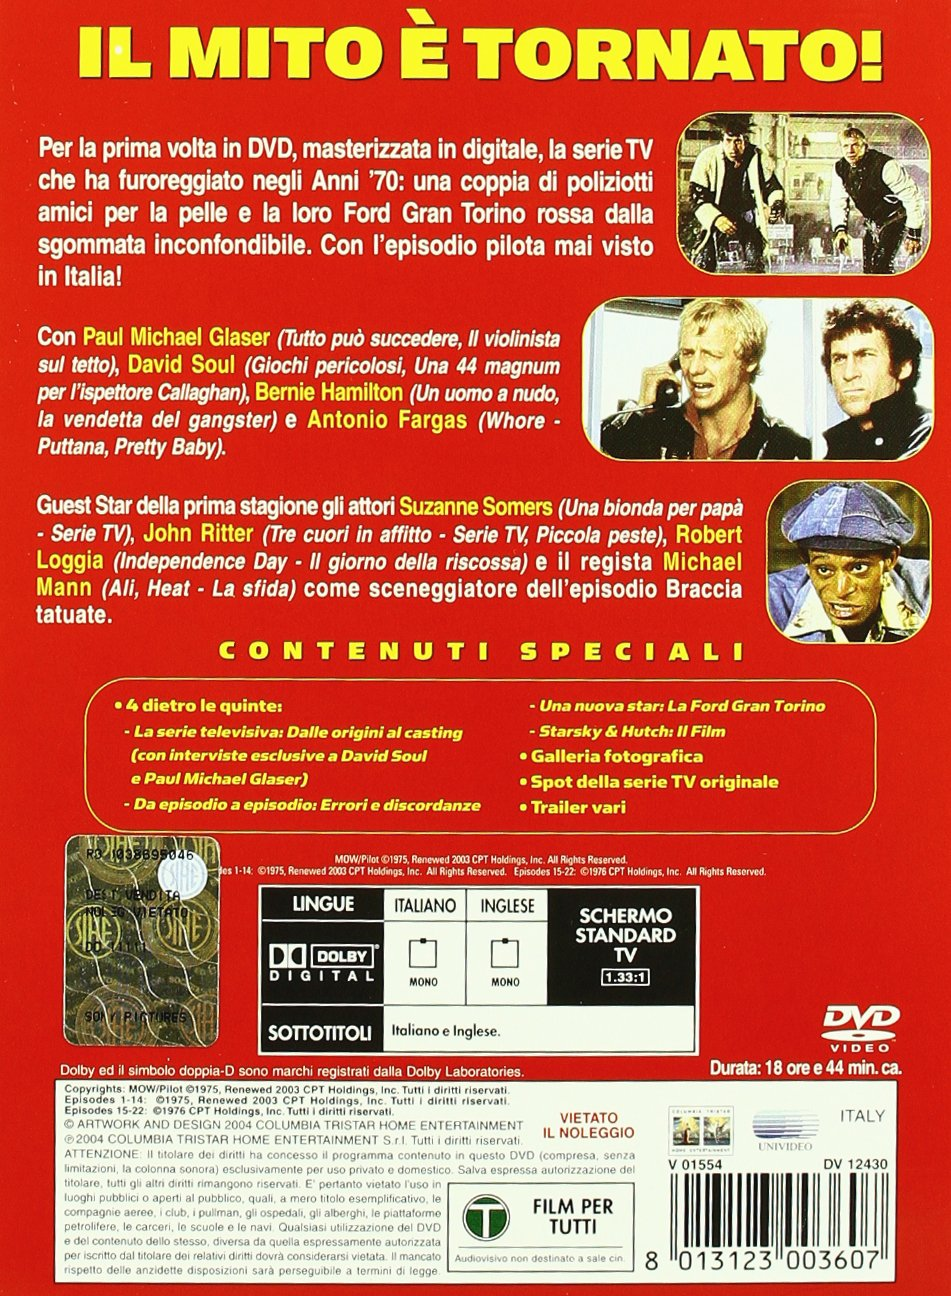 Amazon.com: Starsky & Hutch - Stagione 01 (5 Dvd) [Italian Edition]: antonio fargas, david solu, barry shear: Movies & TV